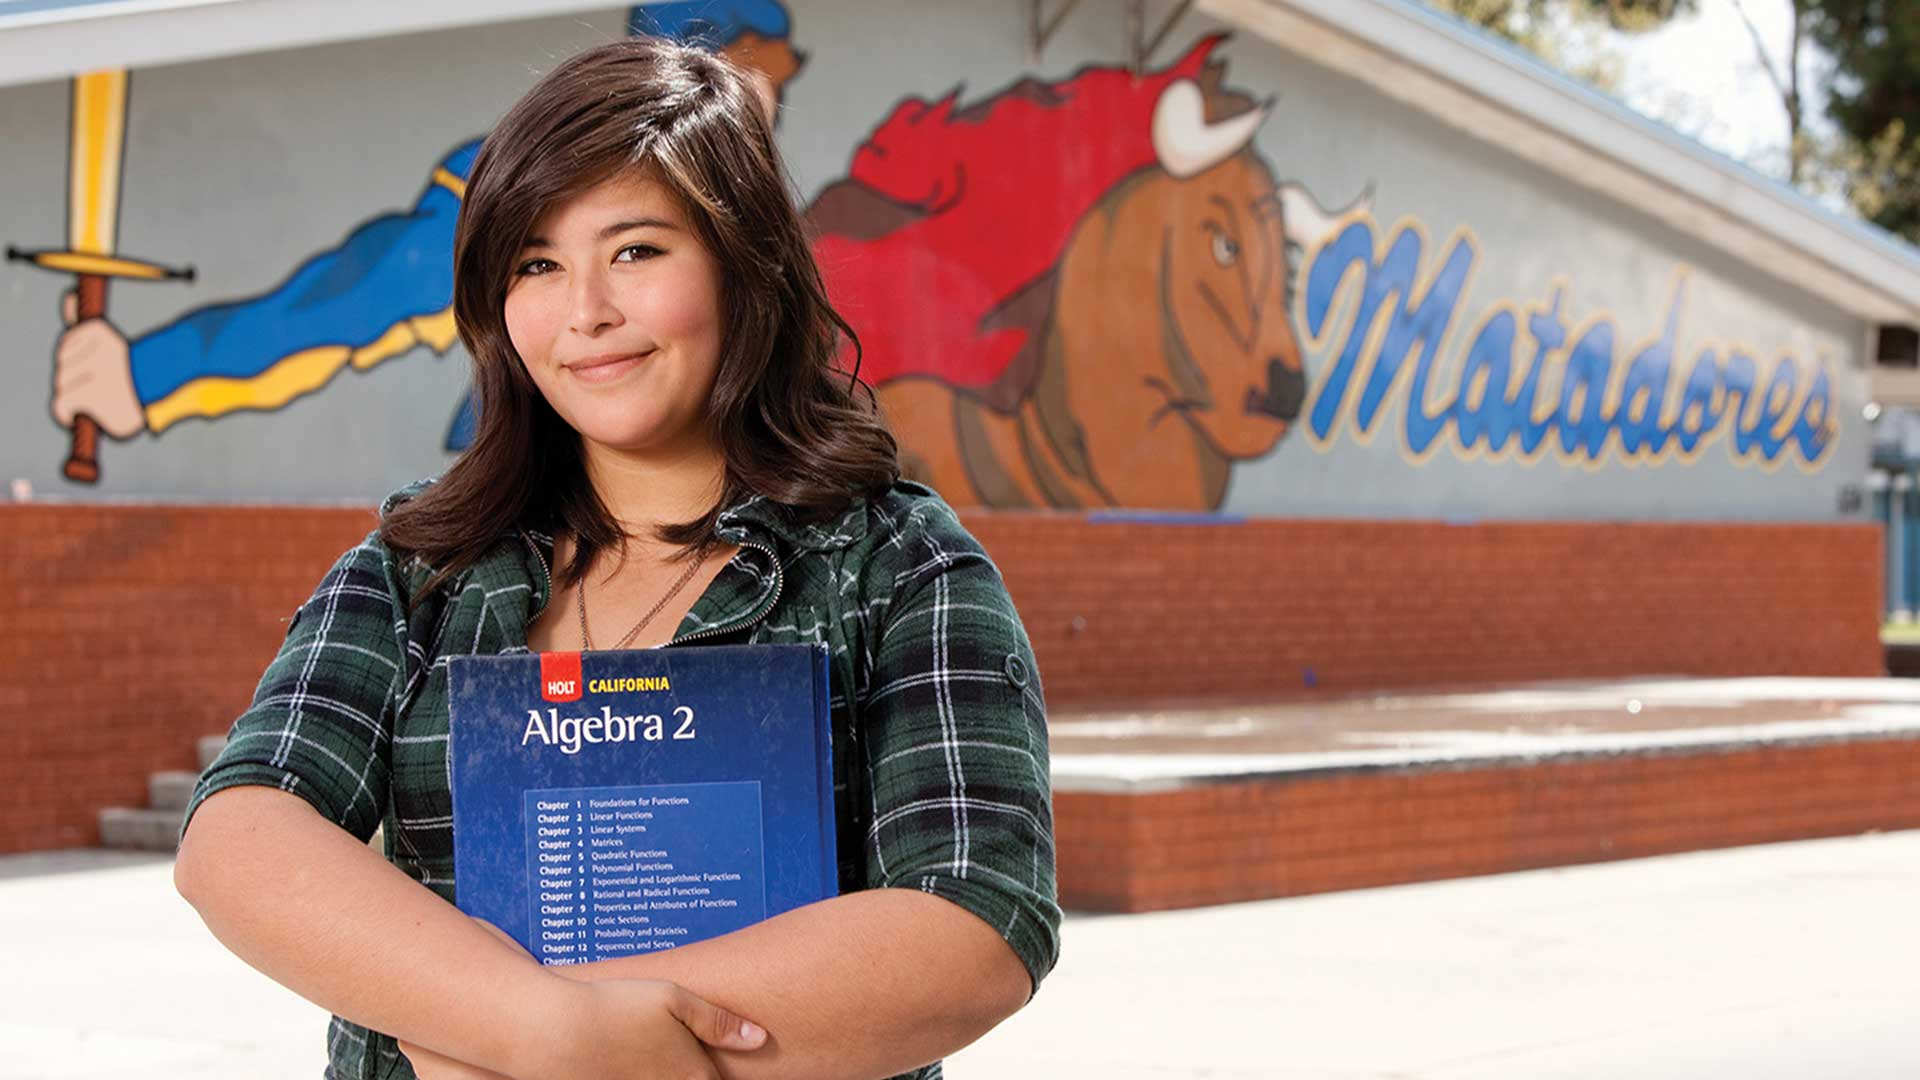 Latina student holding an algebra book standing in front of her school.